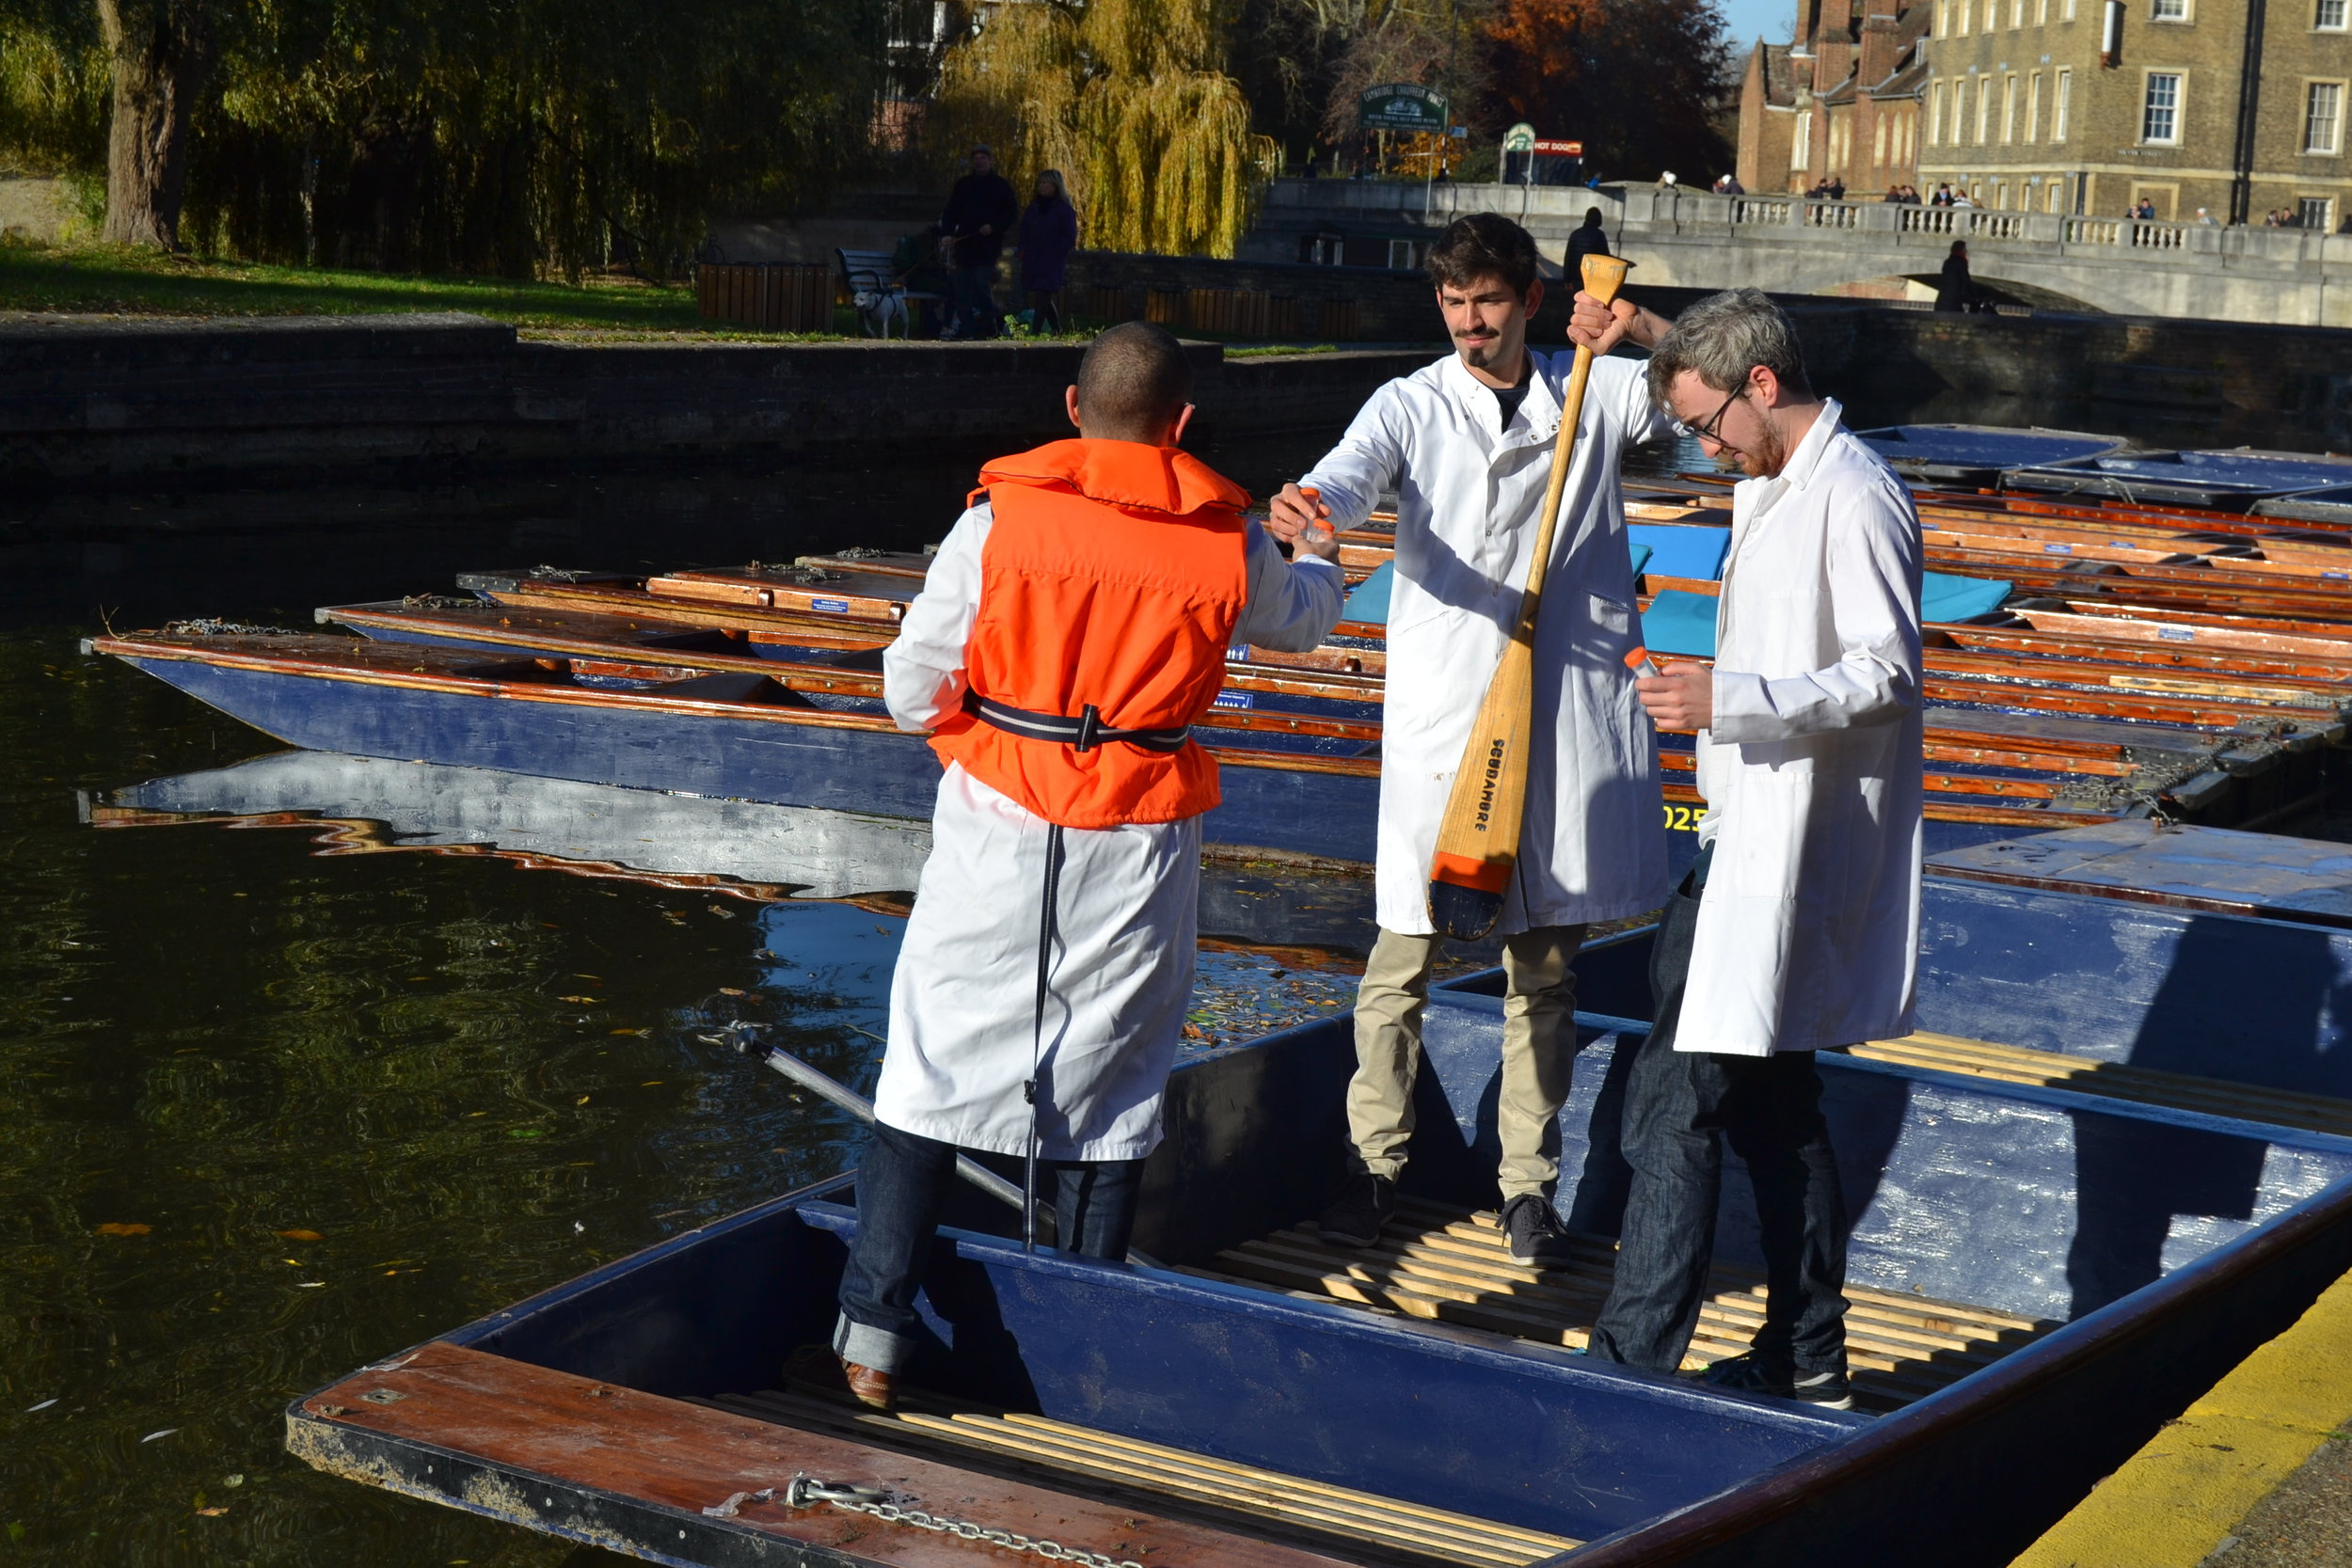 Sampling from aboard a punt on the River Cam